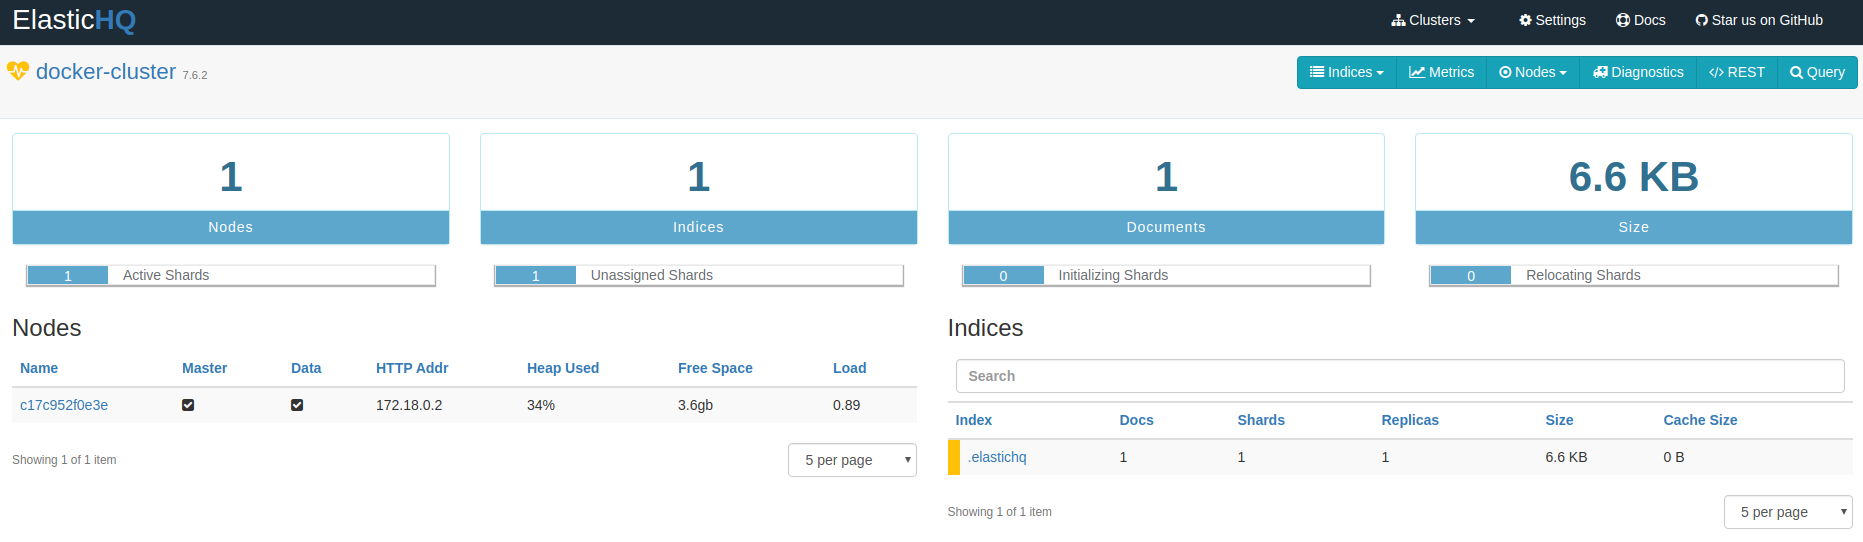 elastichq screen where you can see how Elasti Stack process logs